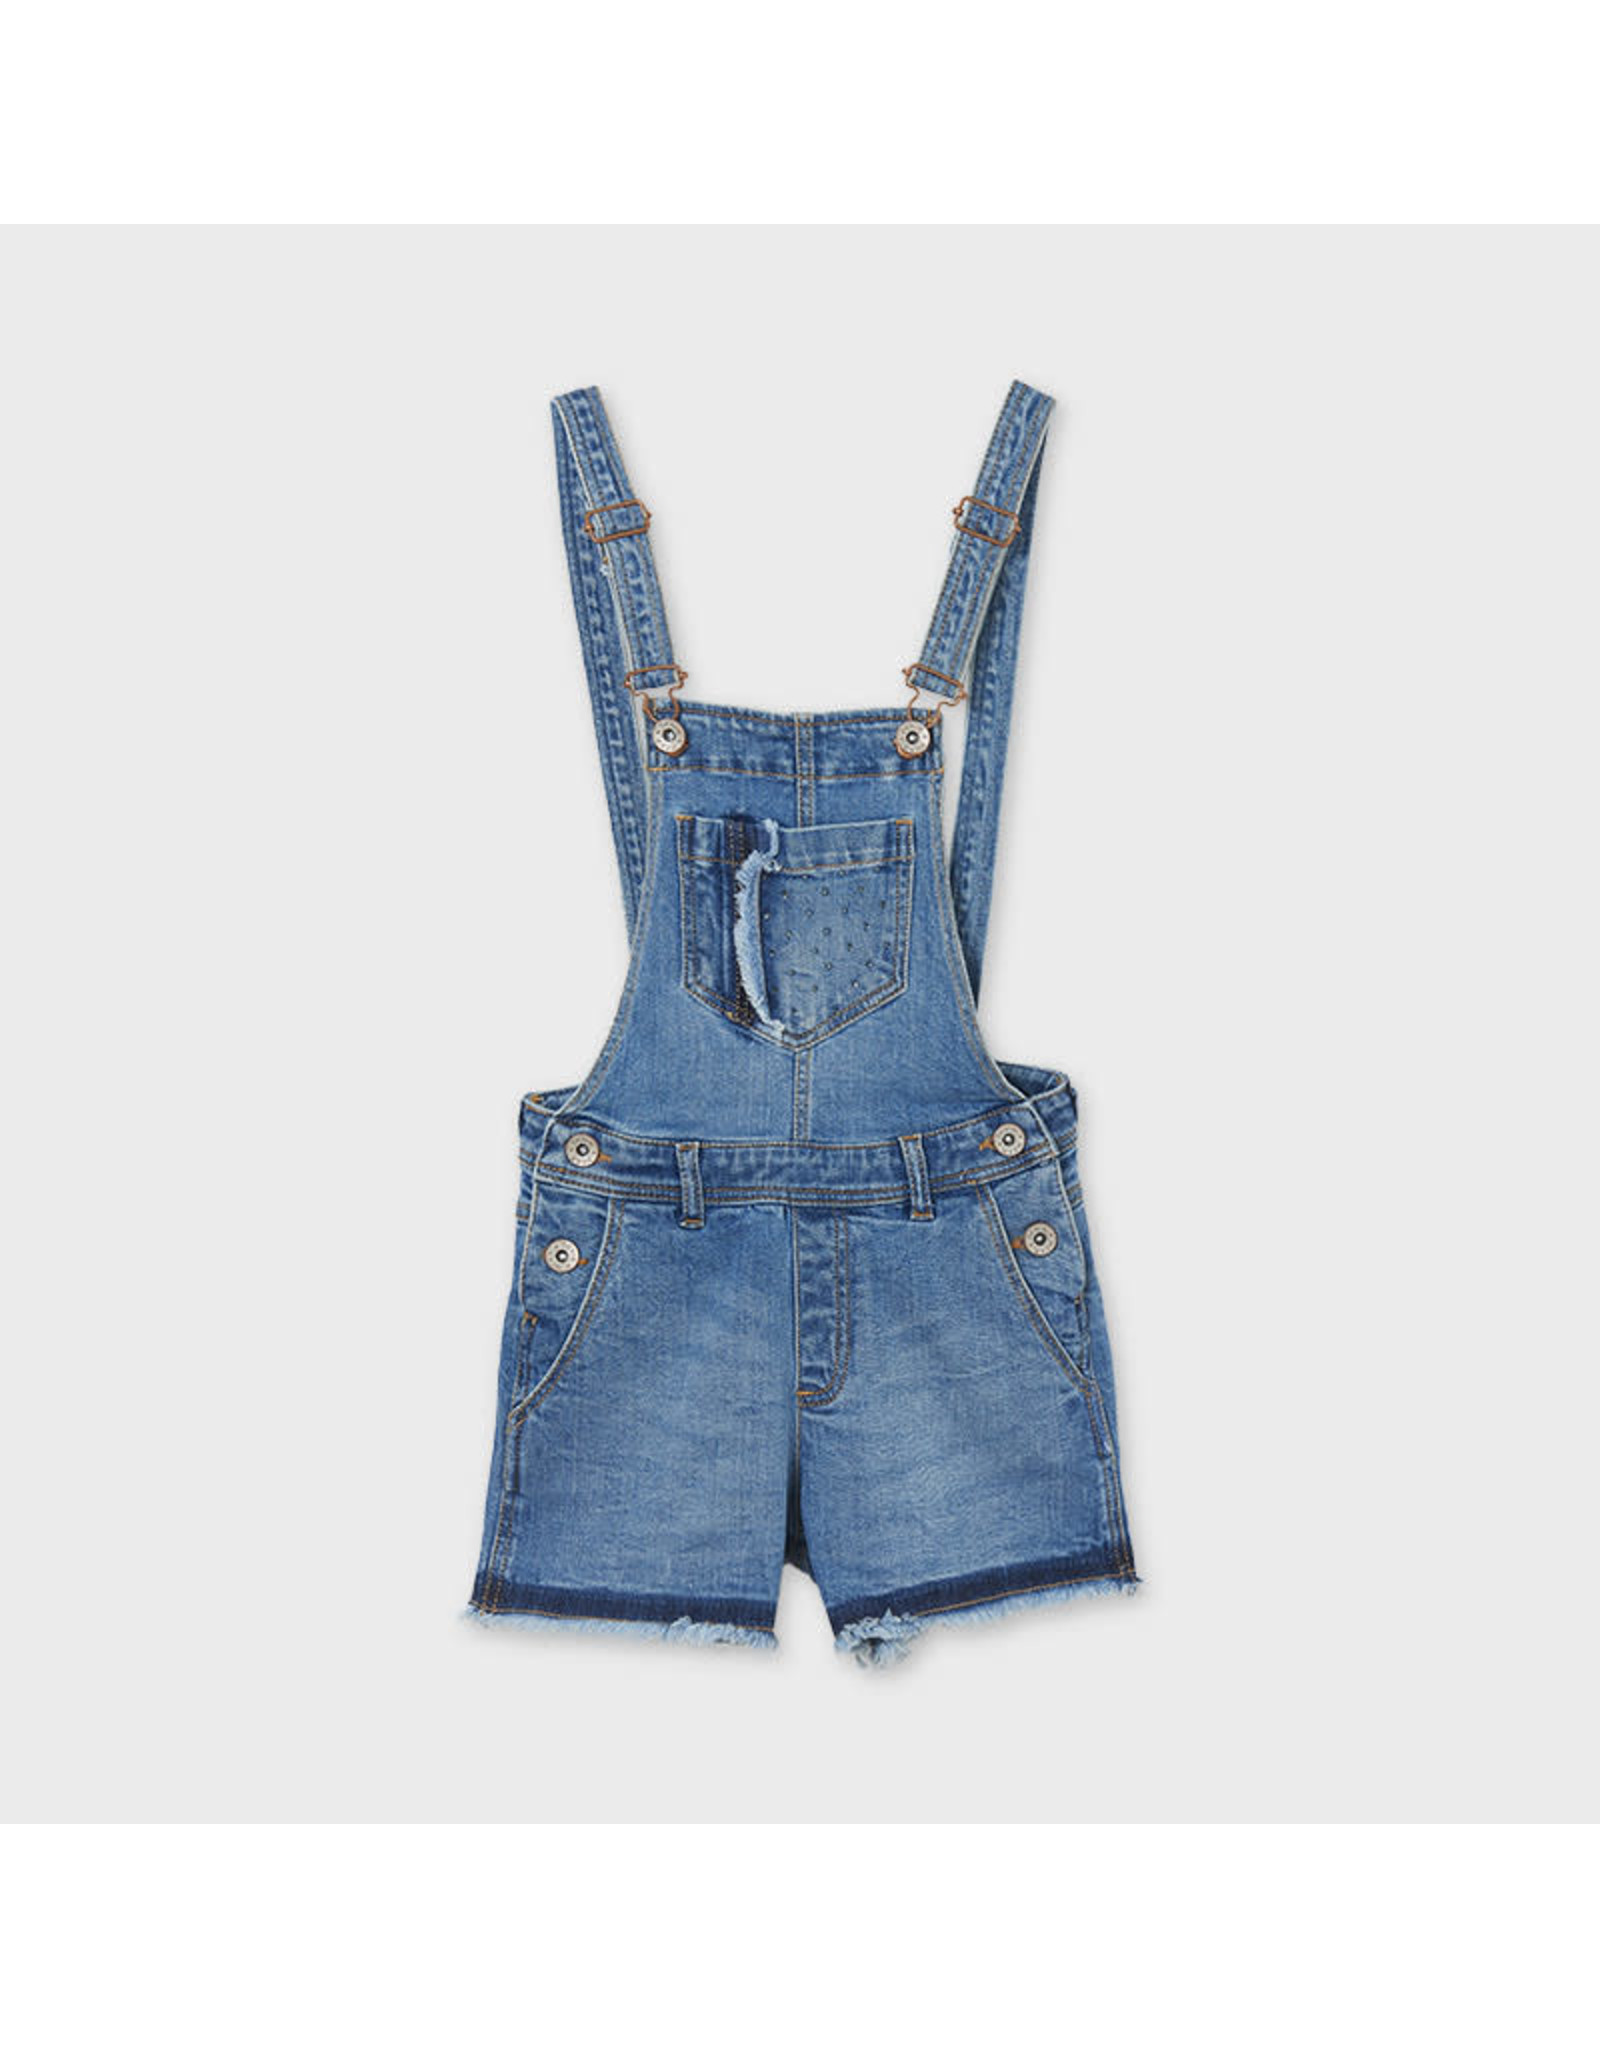 Mayoral Jean Short Overalls